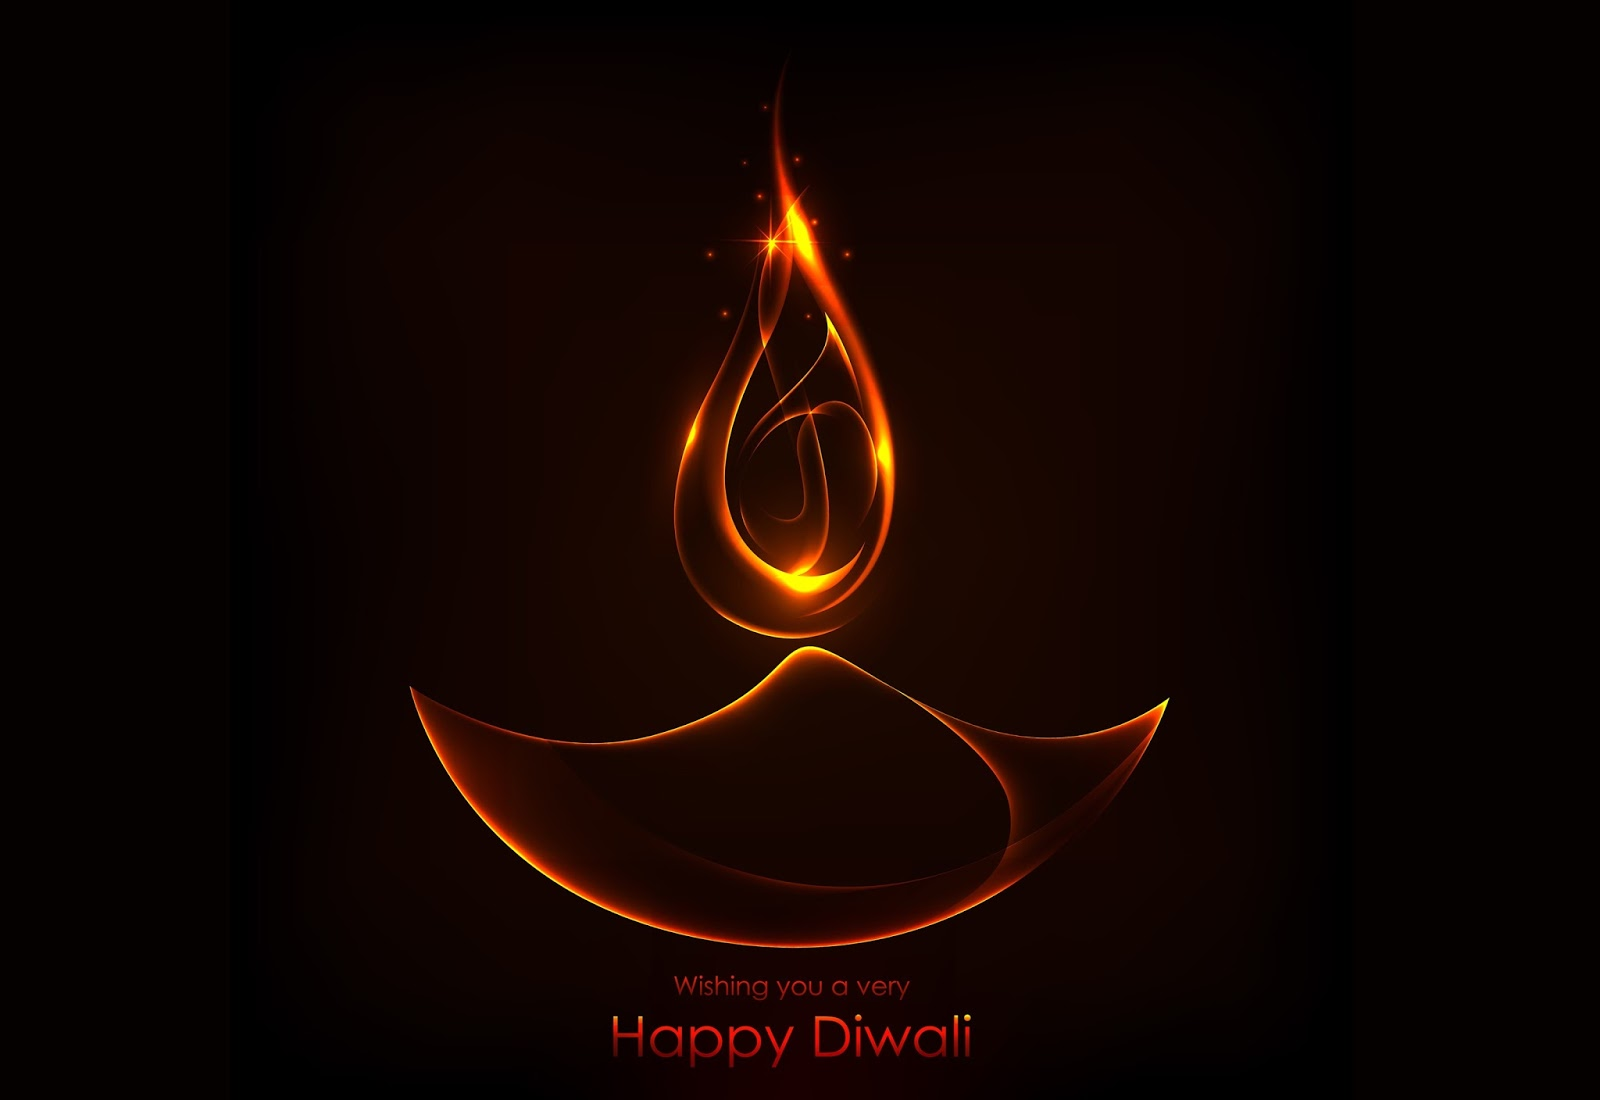 10 ultimate diwali messages happy diwali messages hindienglish send them these diwali greetings messages either through facebookwhatsapp or text them short happy diwali sms m4hsunfo